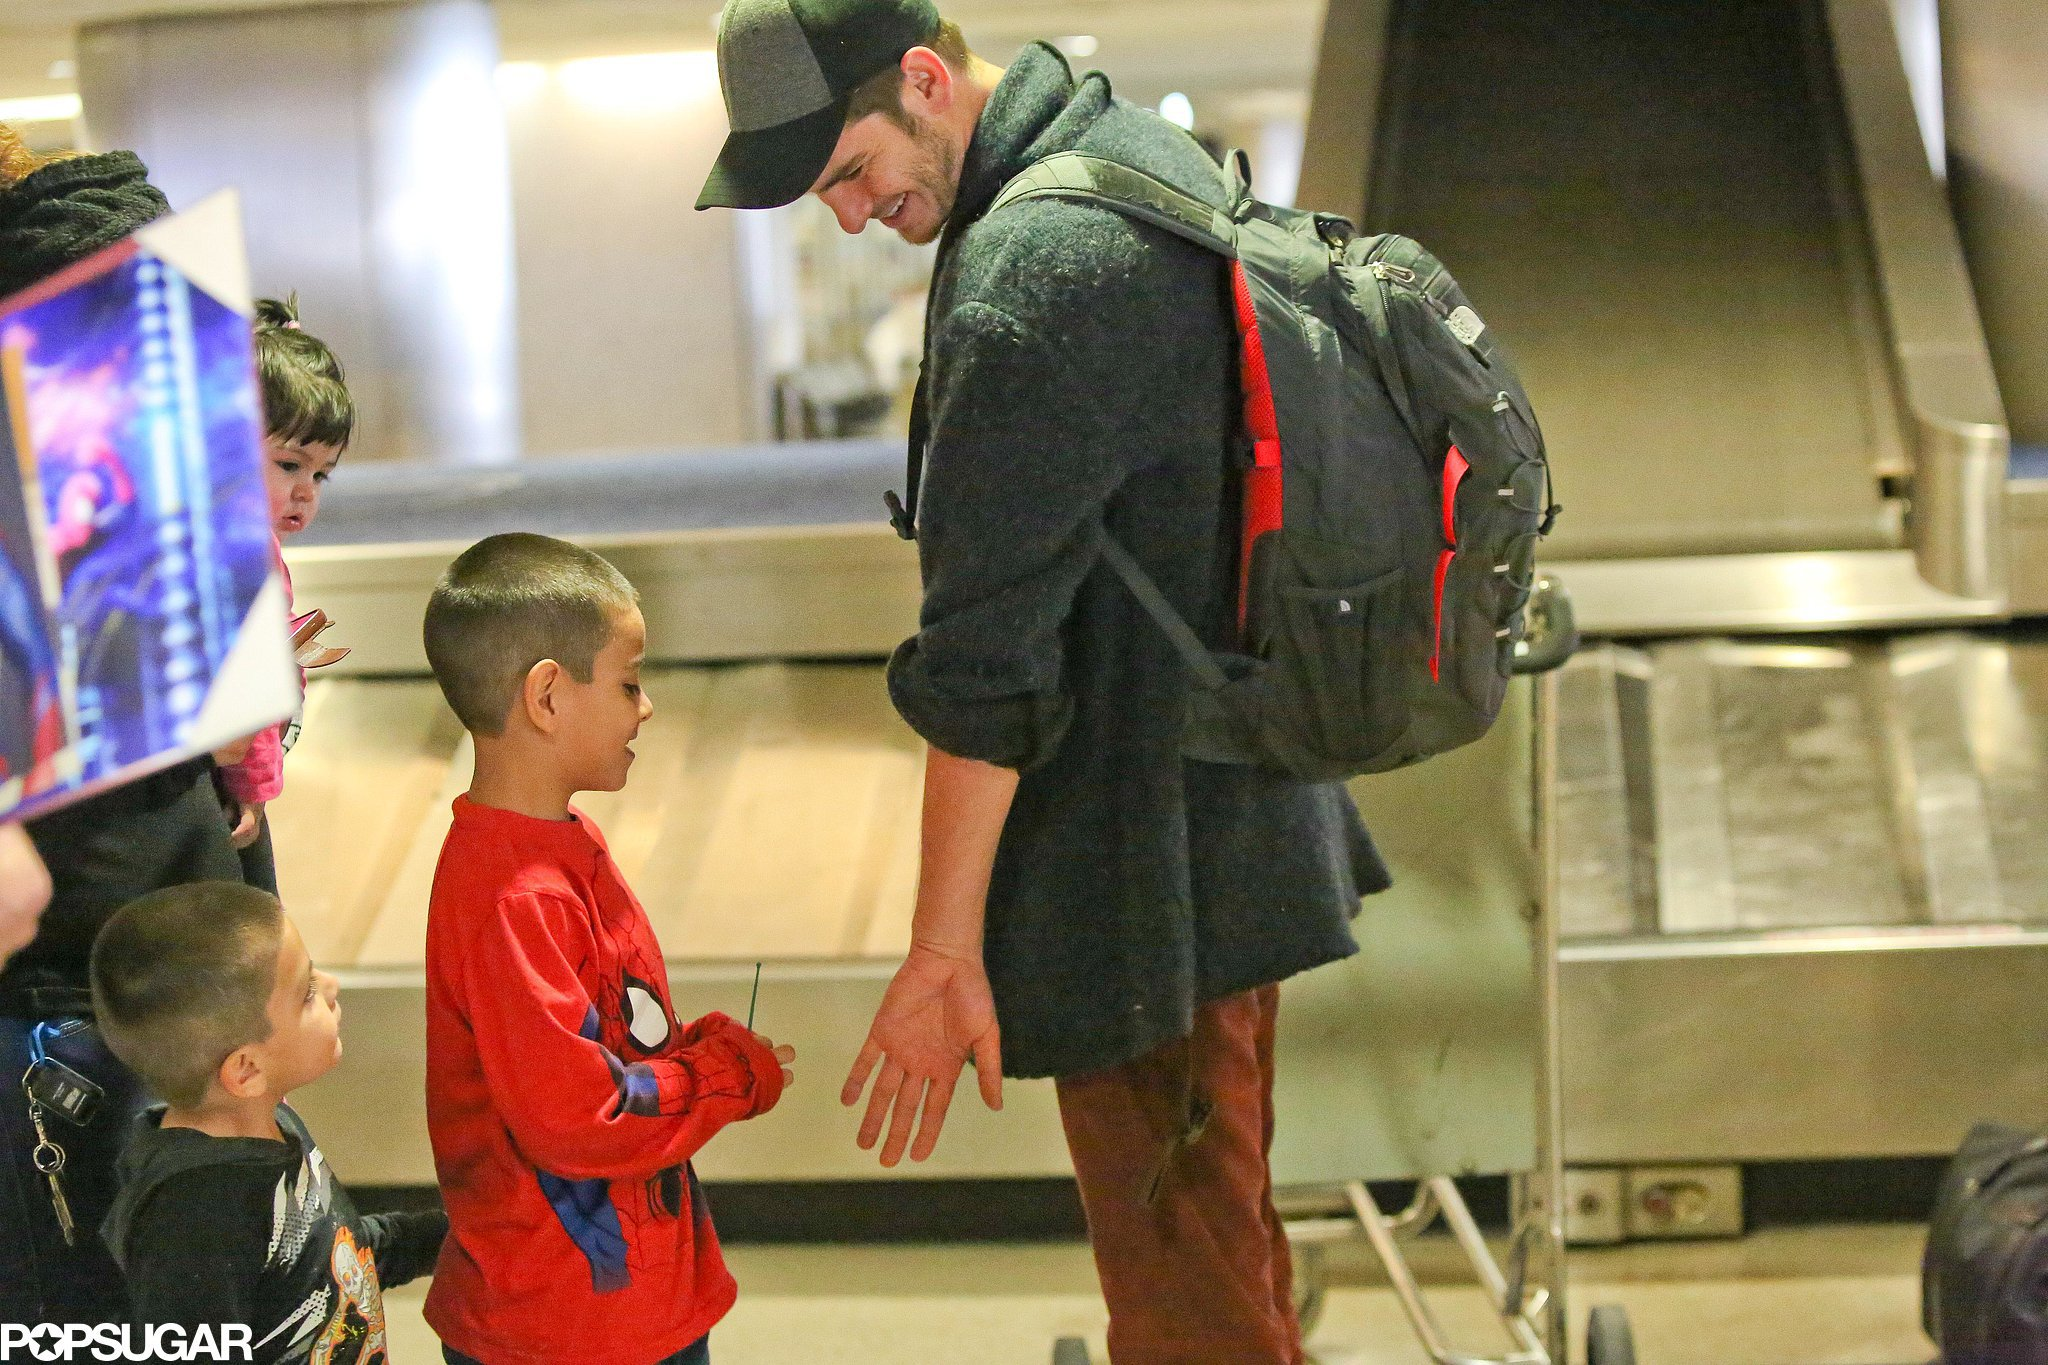 The Priceless Moment Between Andrew Garfield and His Little Spider-Man Fan